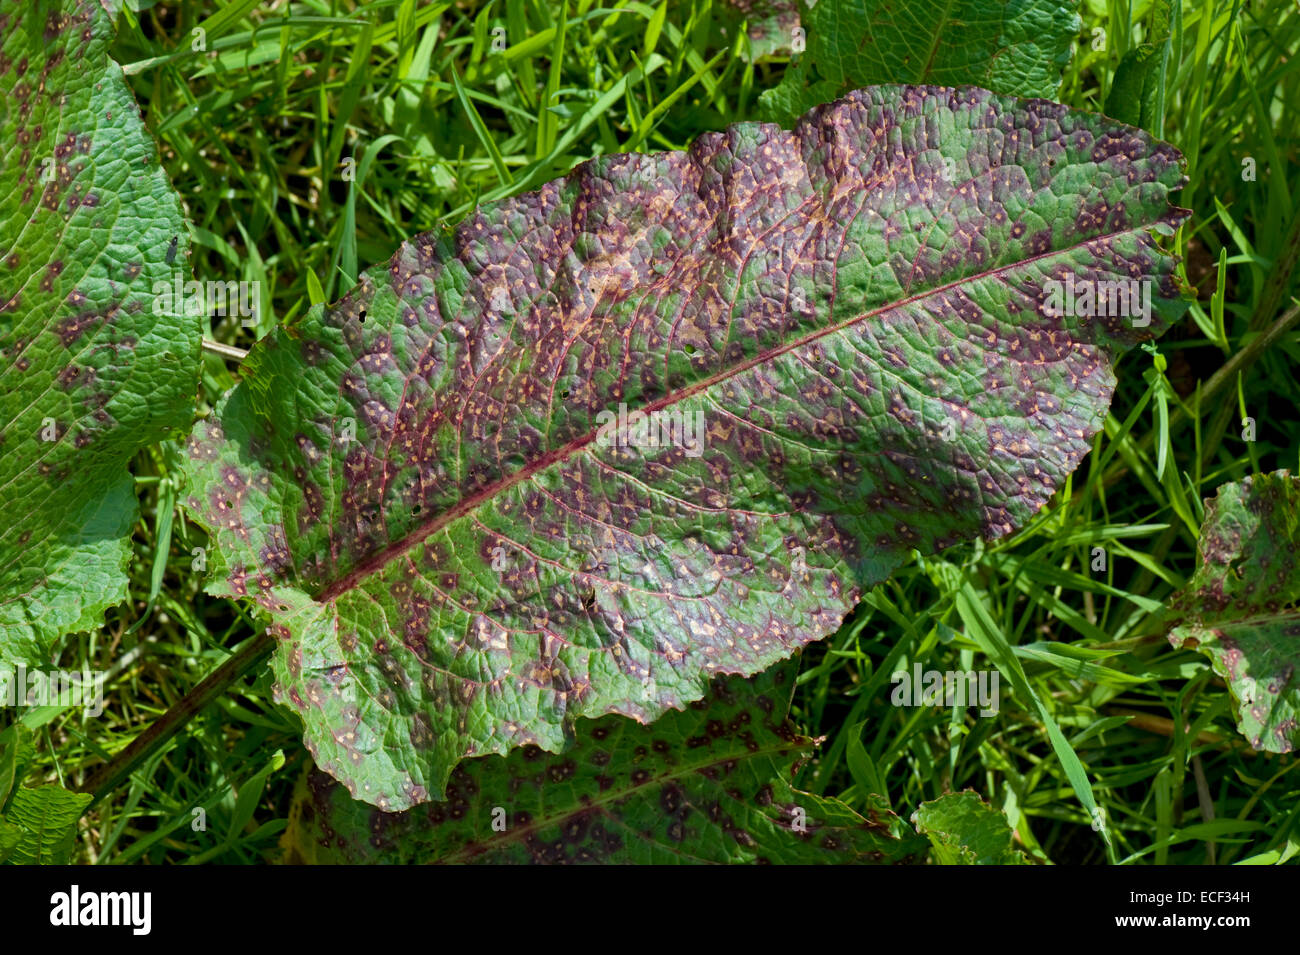 A leaf spot, Ramularia rubella, seriously affecting a leaf of broad dock, Rumex obtusifolius, Berkshire, May - Stock Image